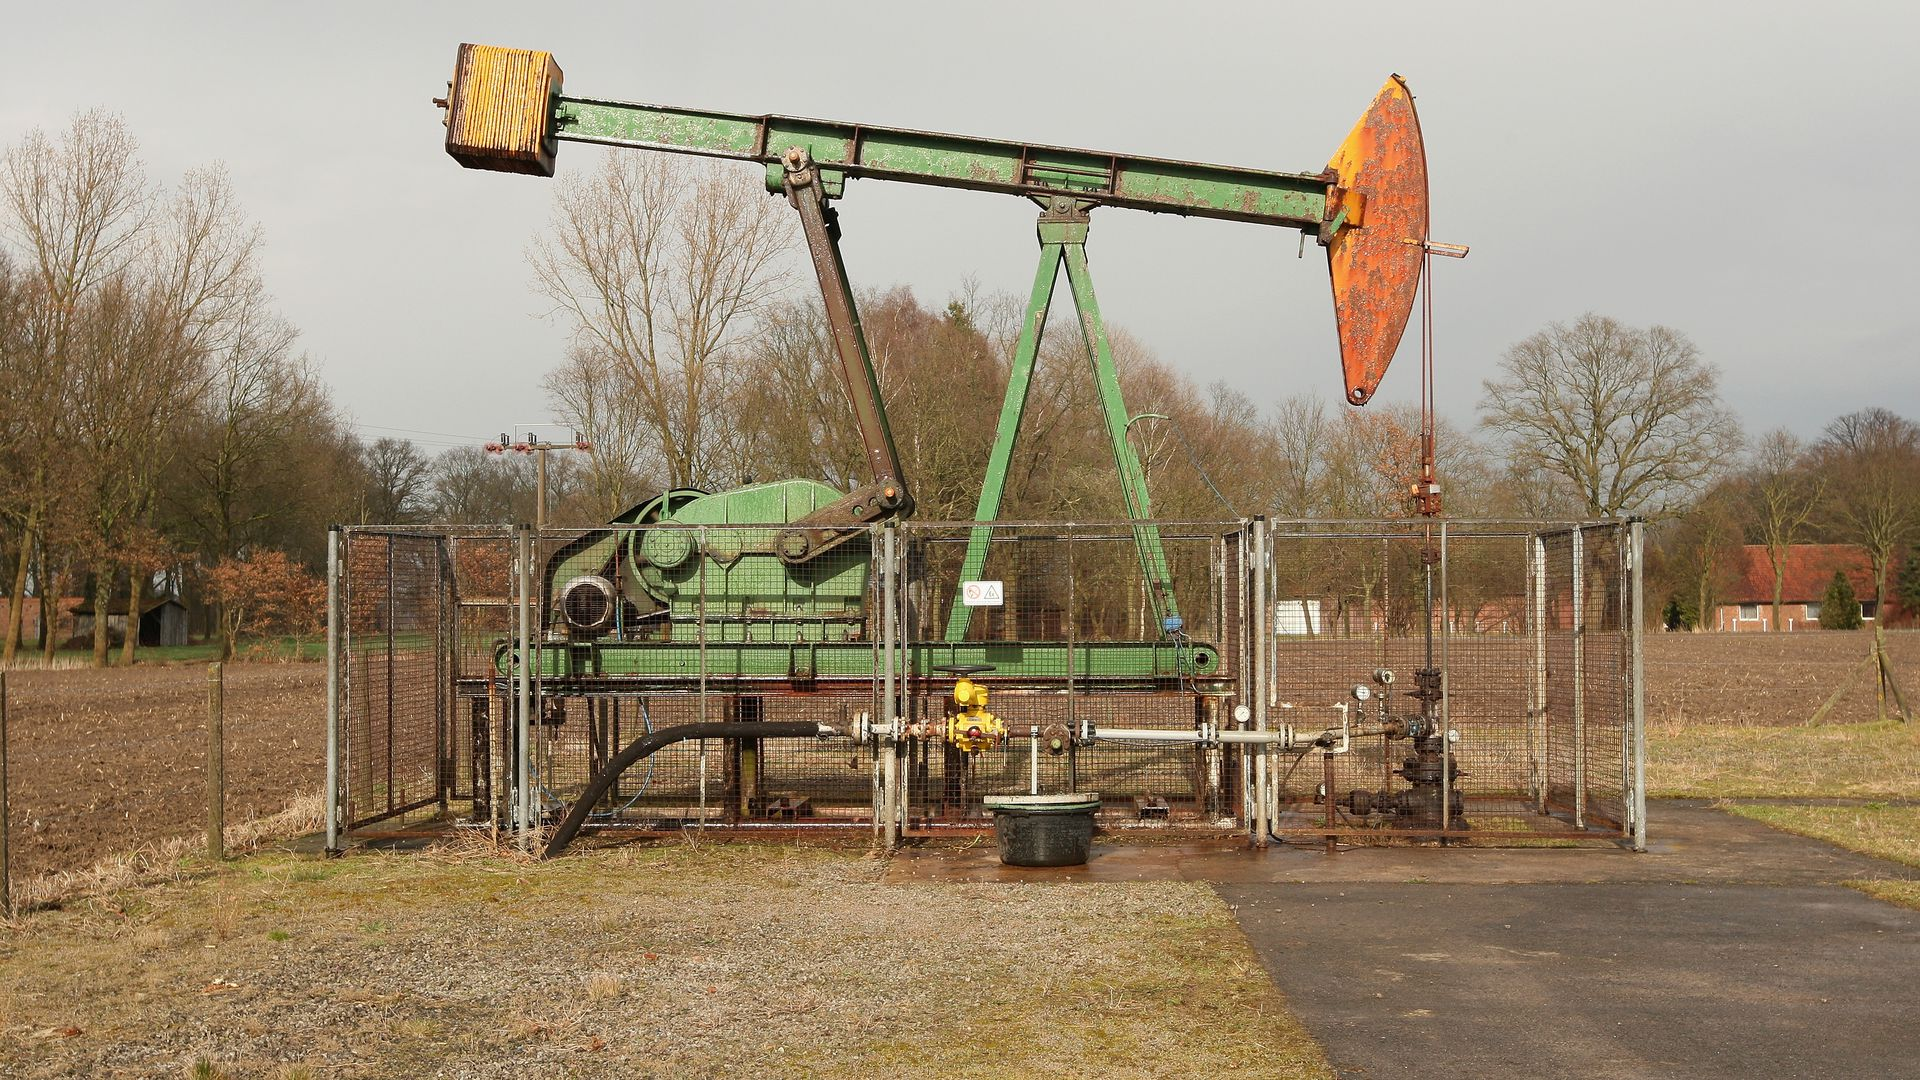 An oil pumpjack operated by ExxonMobi